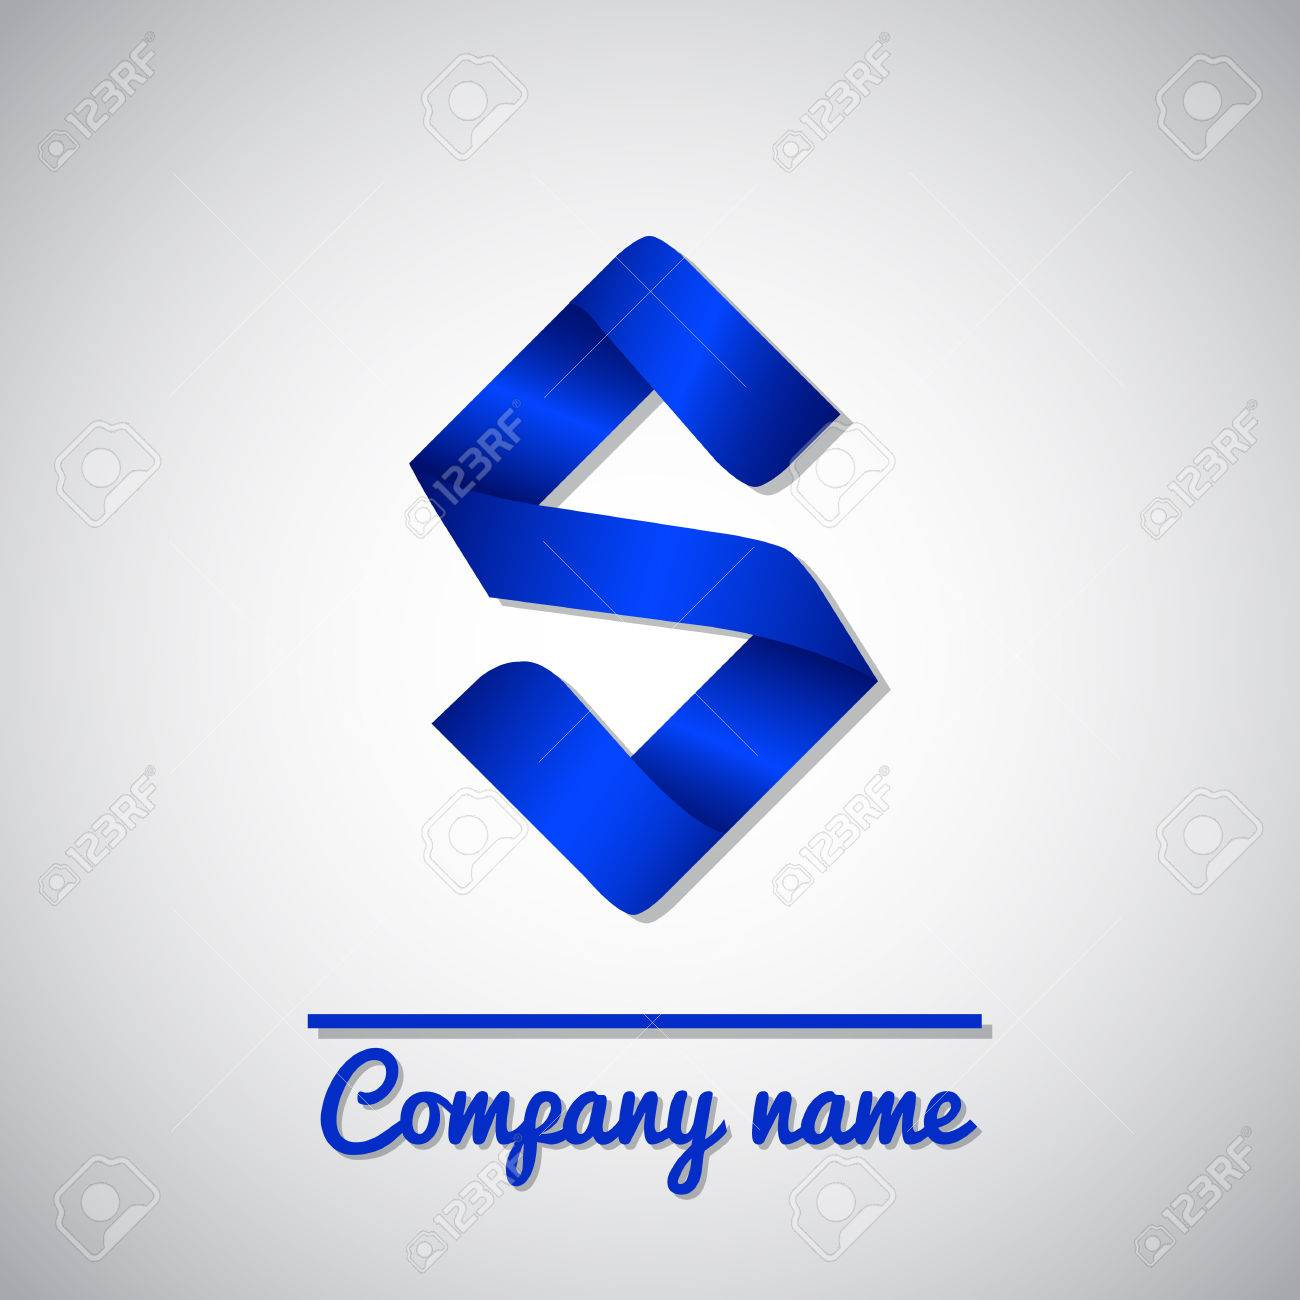 icon of blue paper business icon letter s origami style royalty